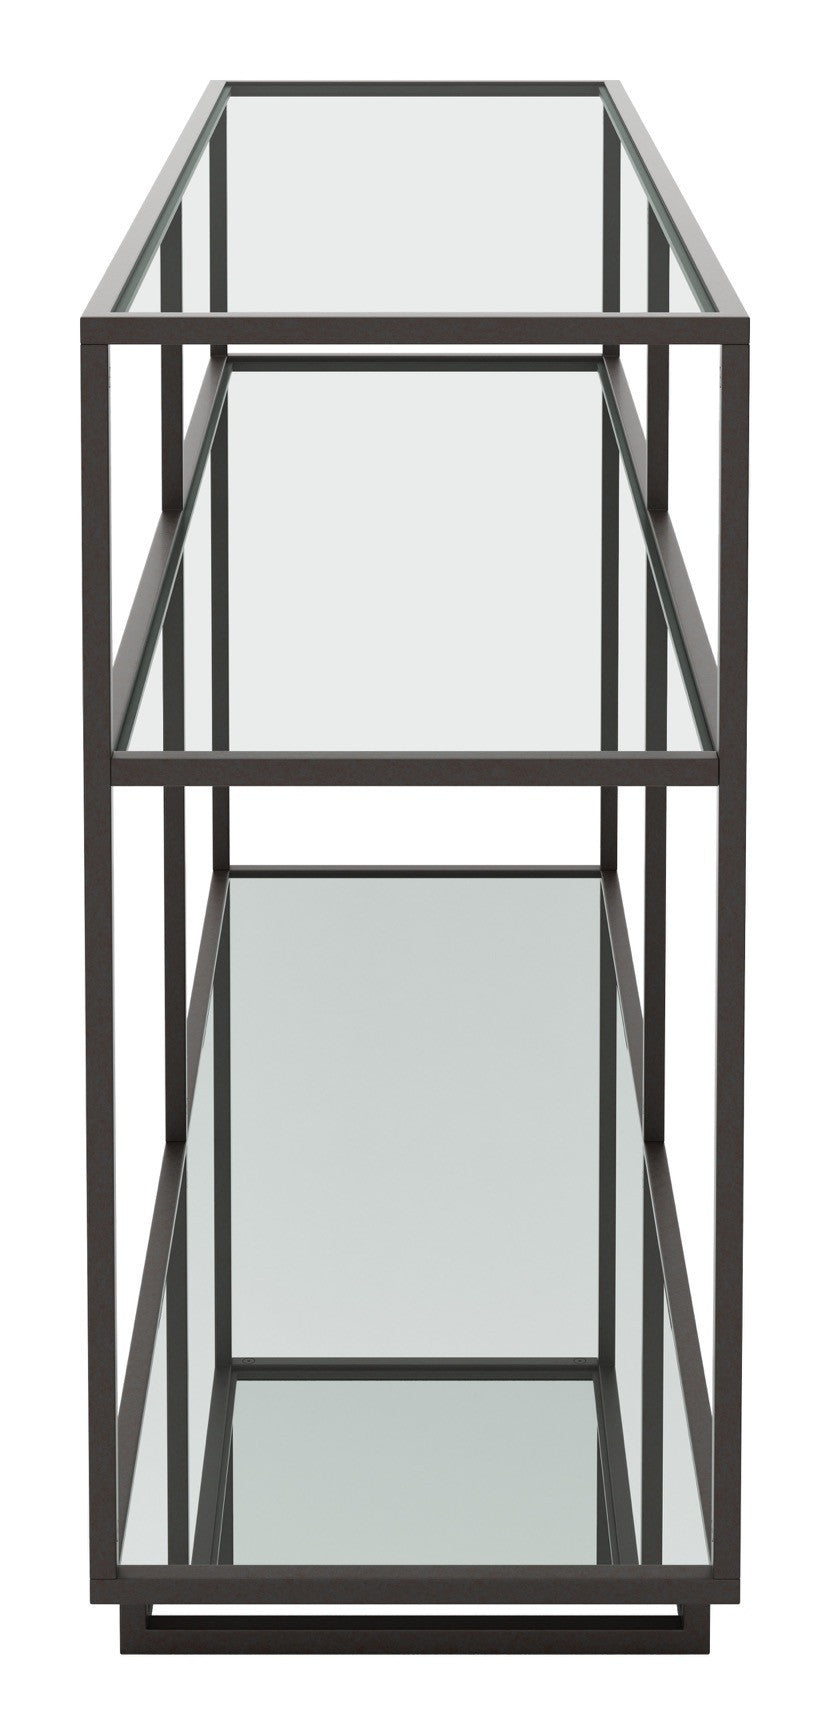 Kure console table in distressed black steel mirror tempered glass kure console table in distressed black steel mirror tempered glass console tables geotapseo Gallery